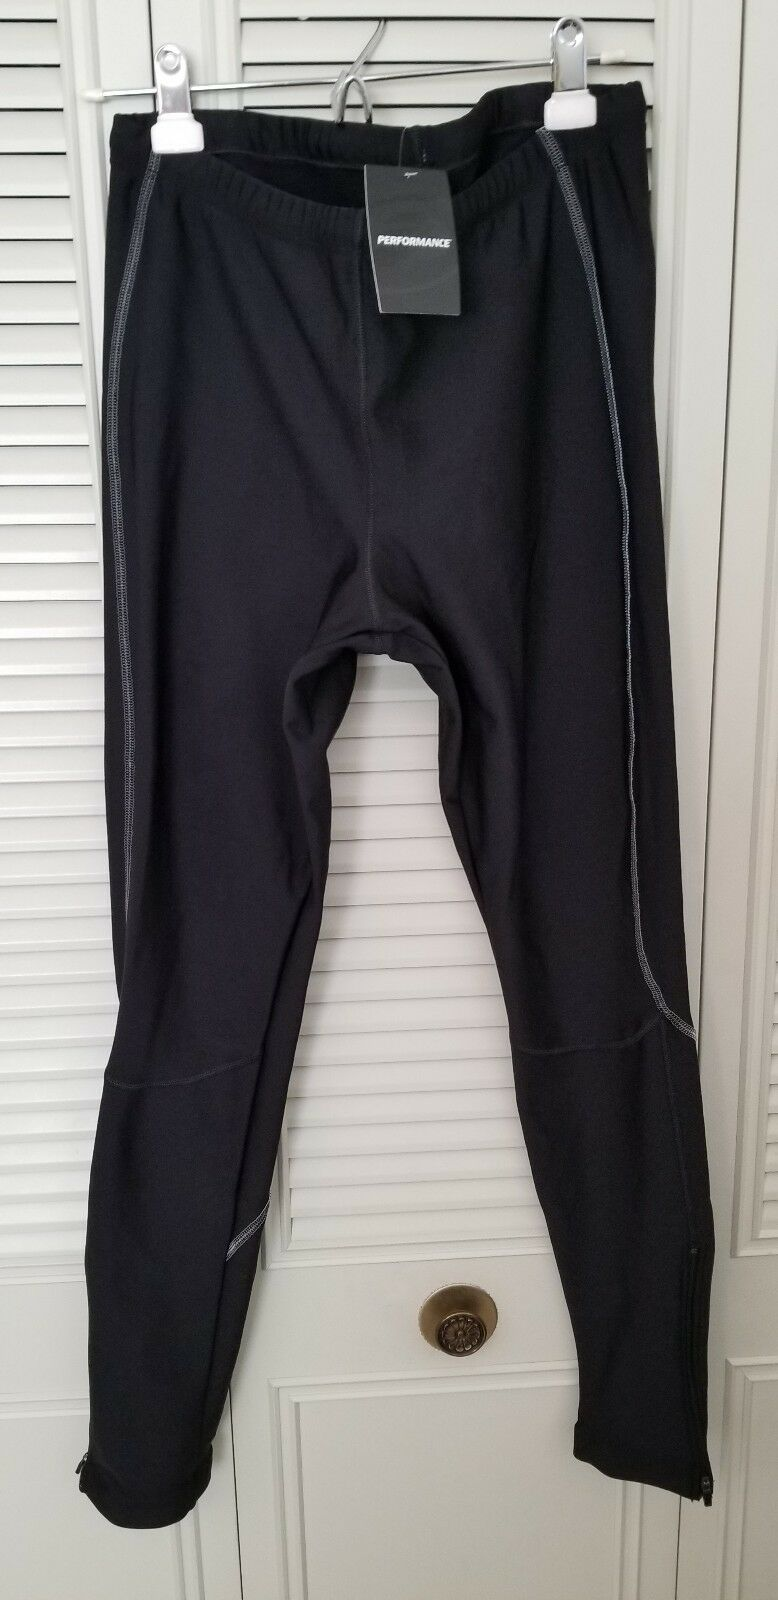 PERFORMANCE CYCLING MEN'S TIGHTS BOUNDARY II SZ XL FLEECE TYPE LINED NEW W  TAG